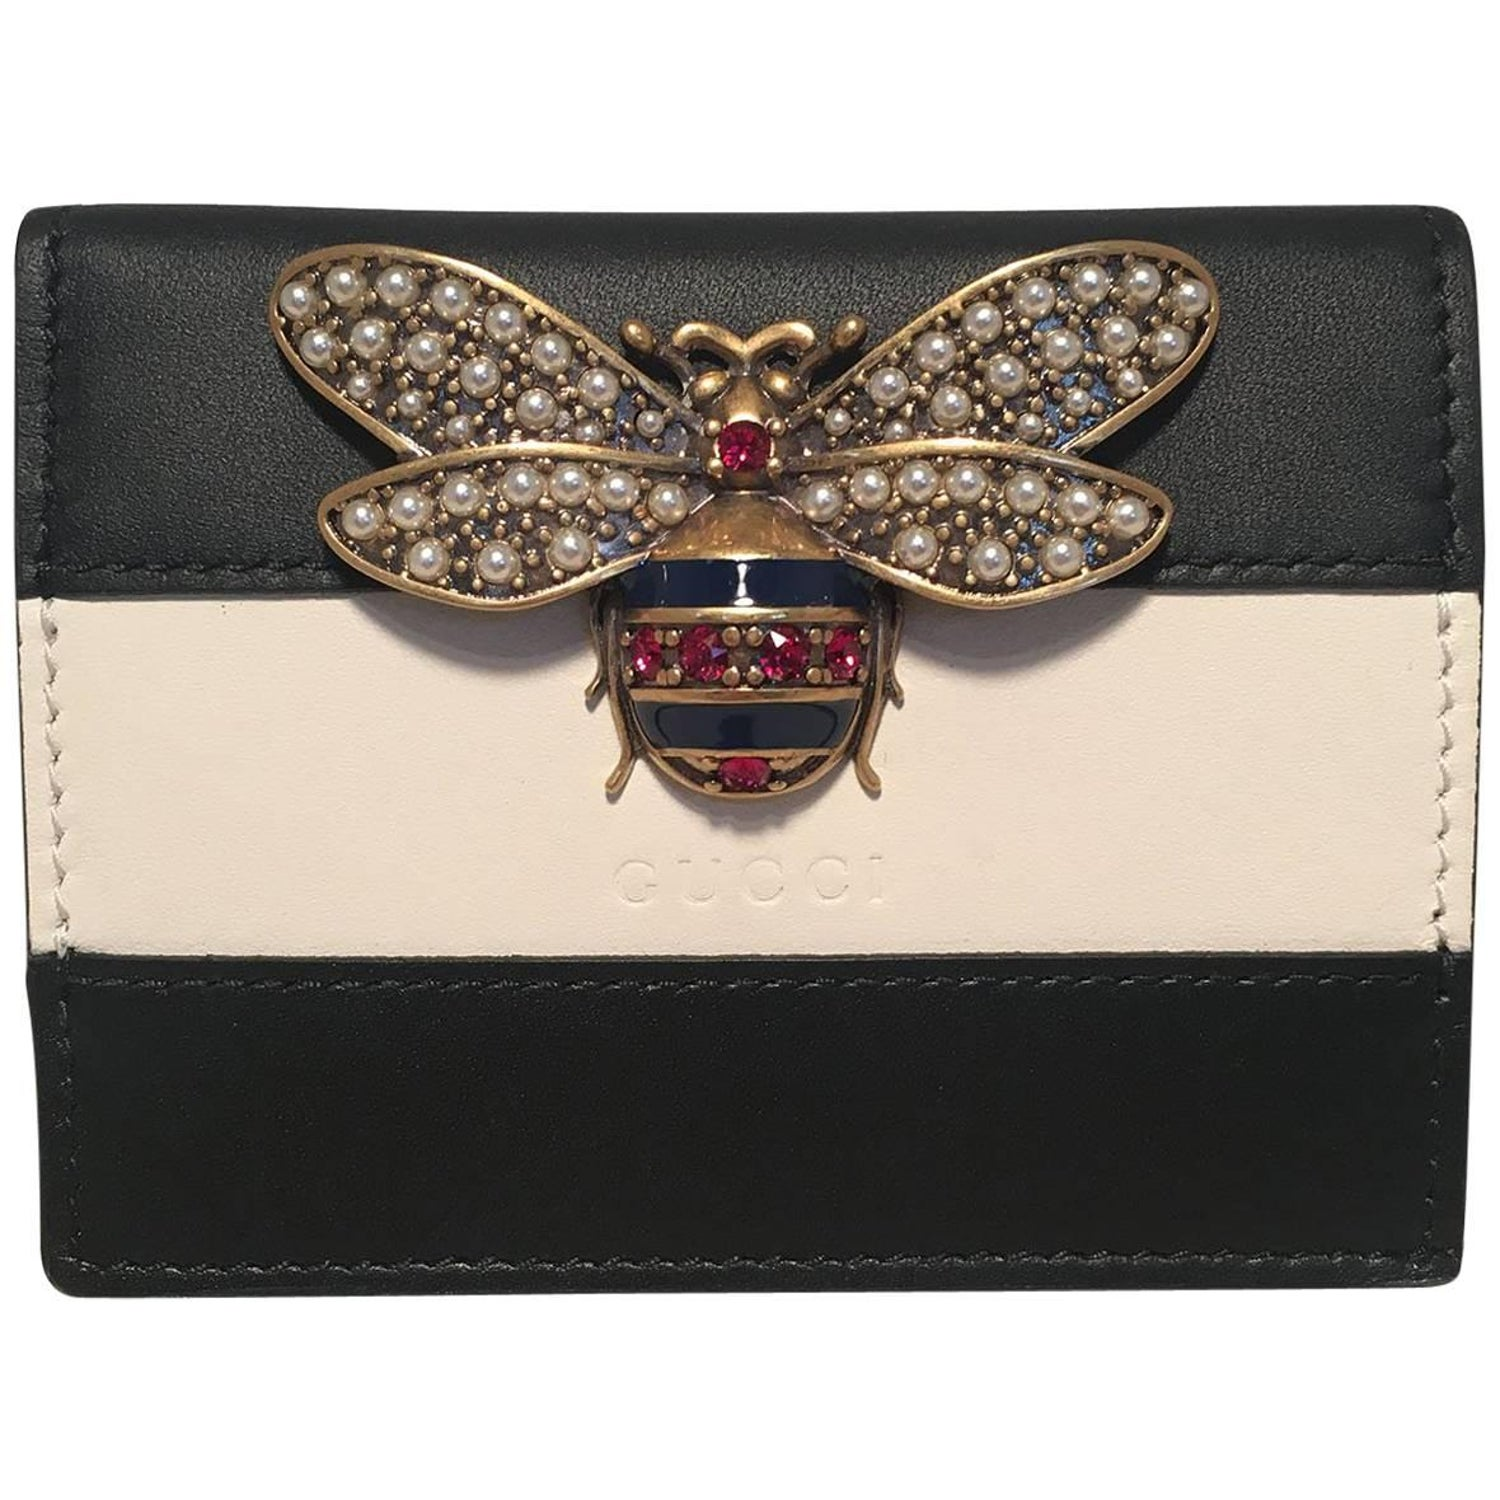 2ff0d6fbc04c NWOT Gucci Small Navy and Cream Striped Leather Embellished Bee Wallet For  Sale at 1stdibs